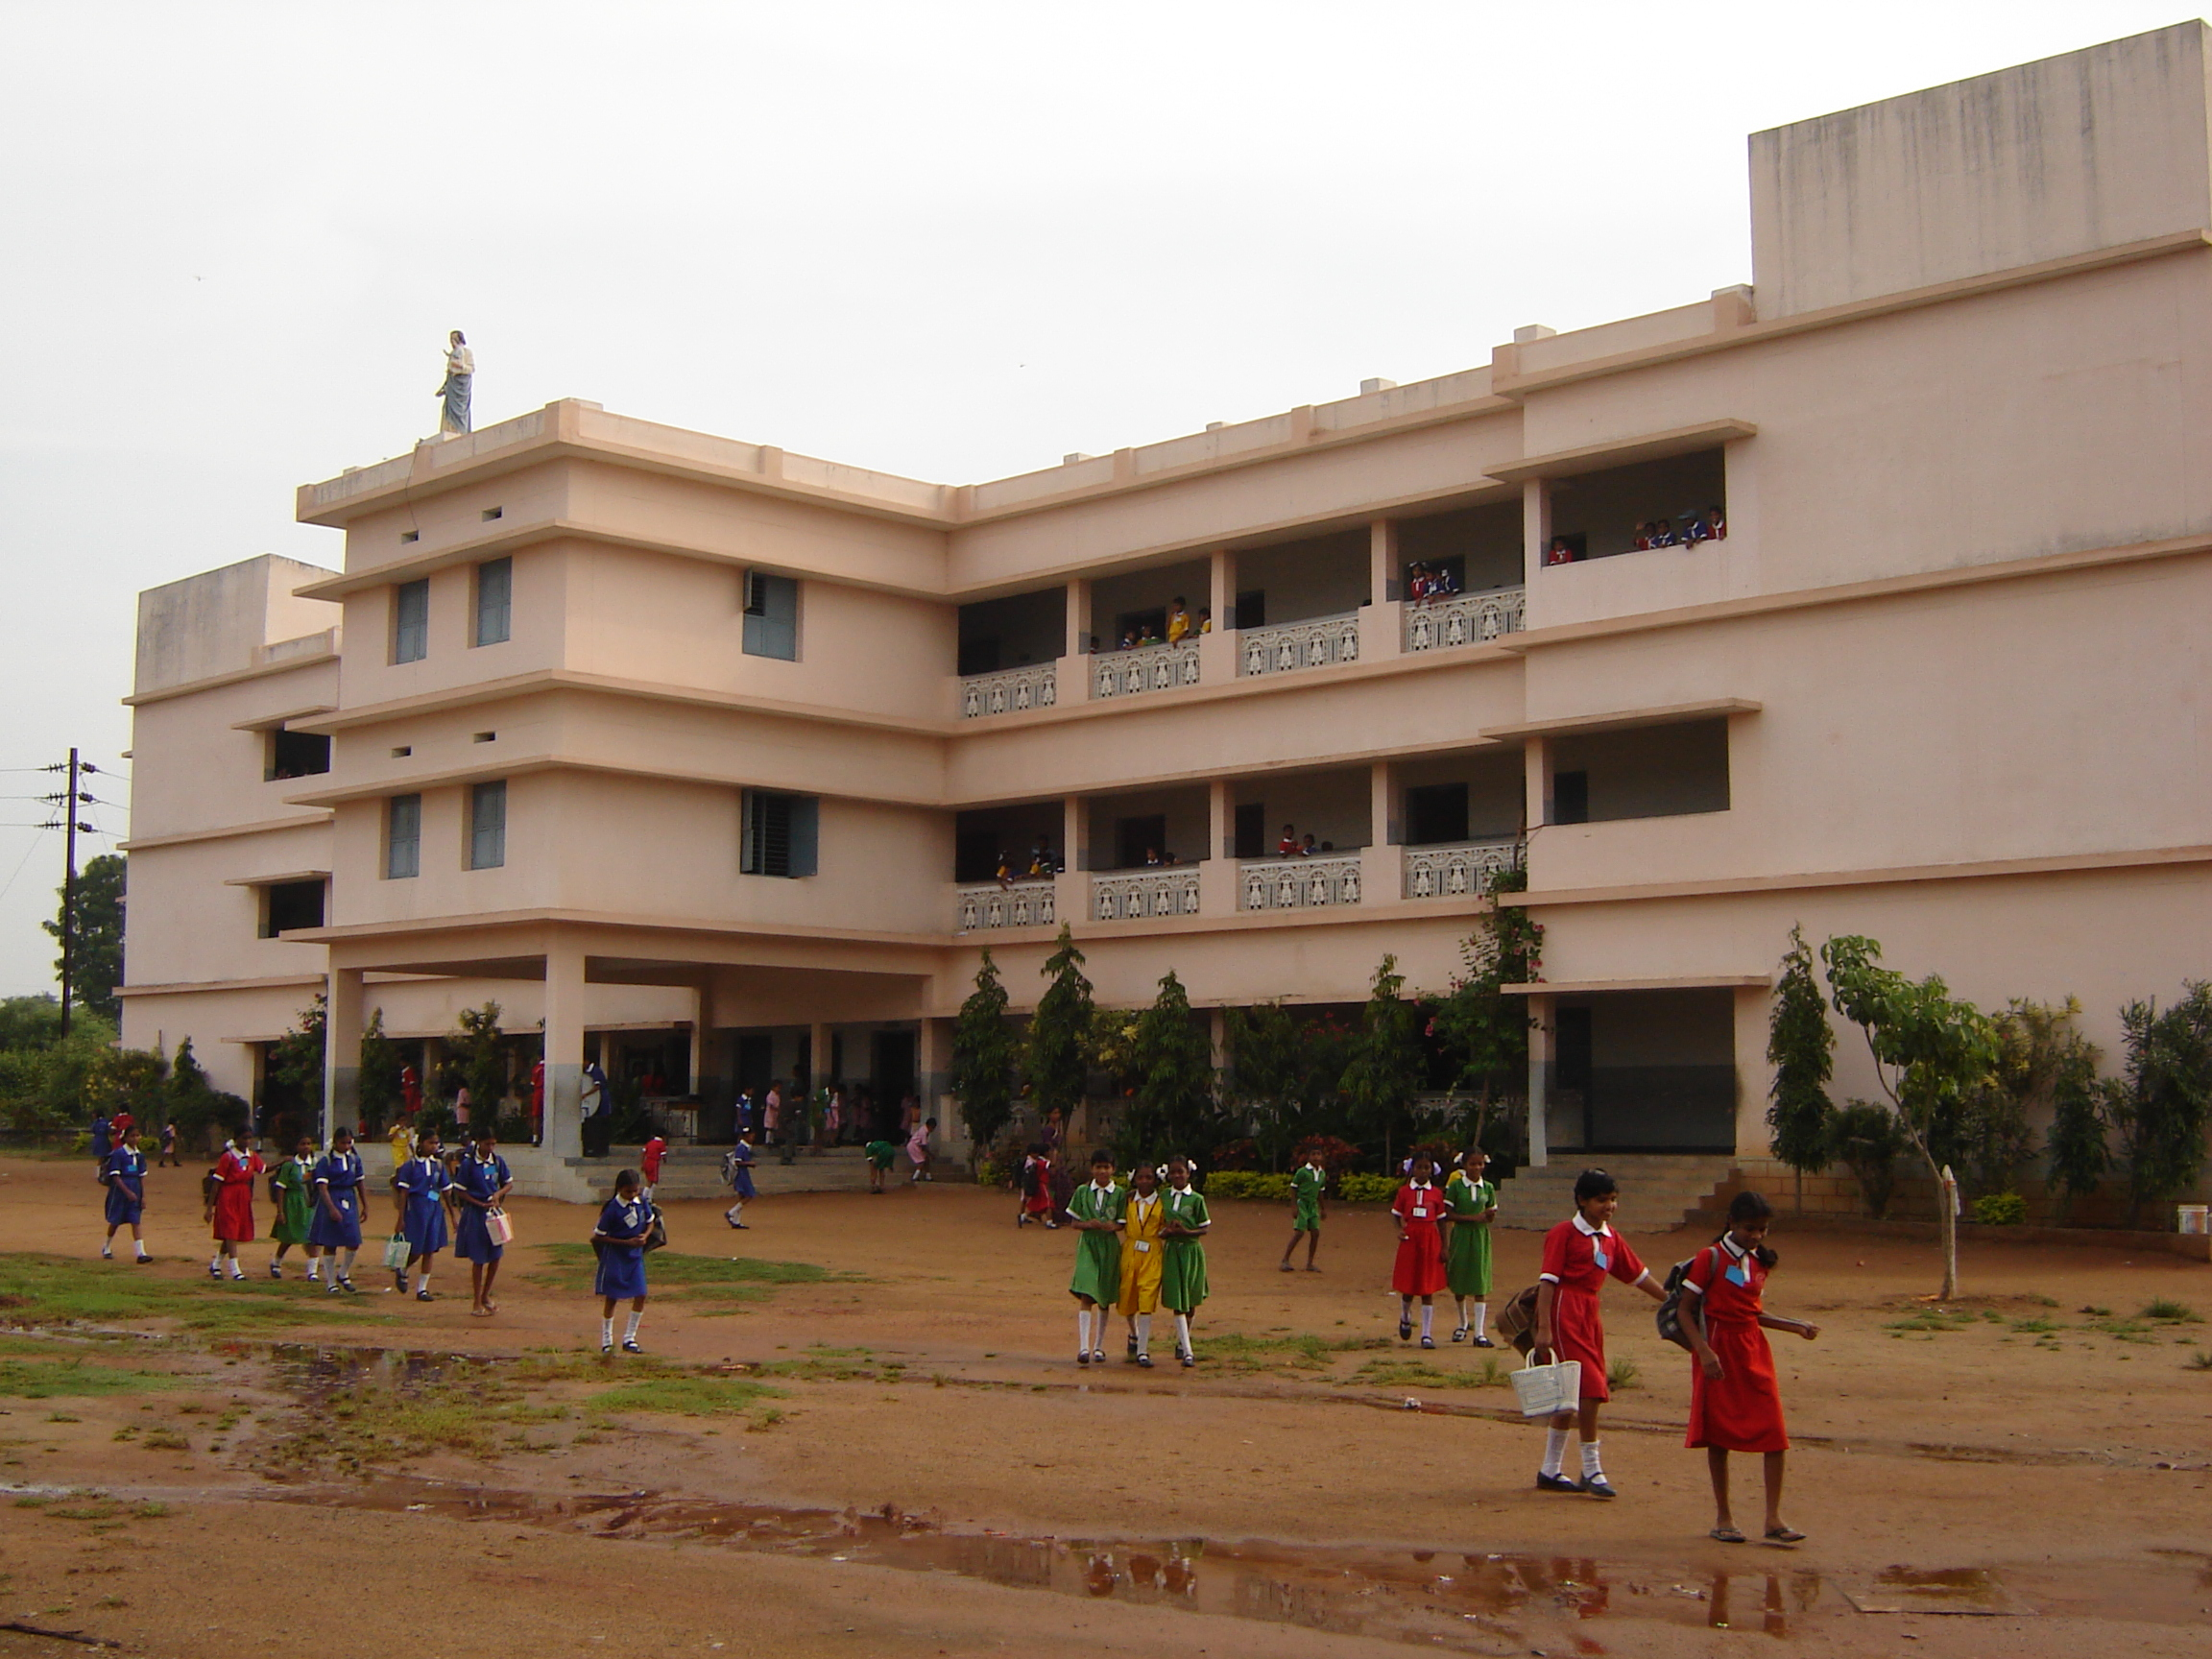 St. Joseph's High School, Aliabad